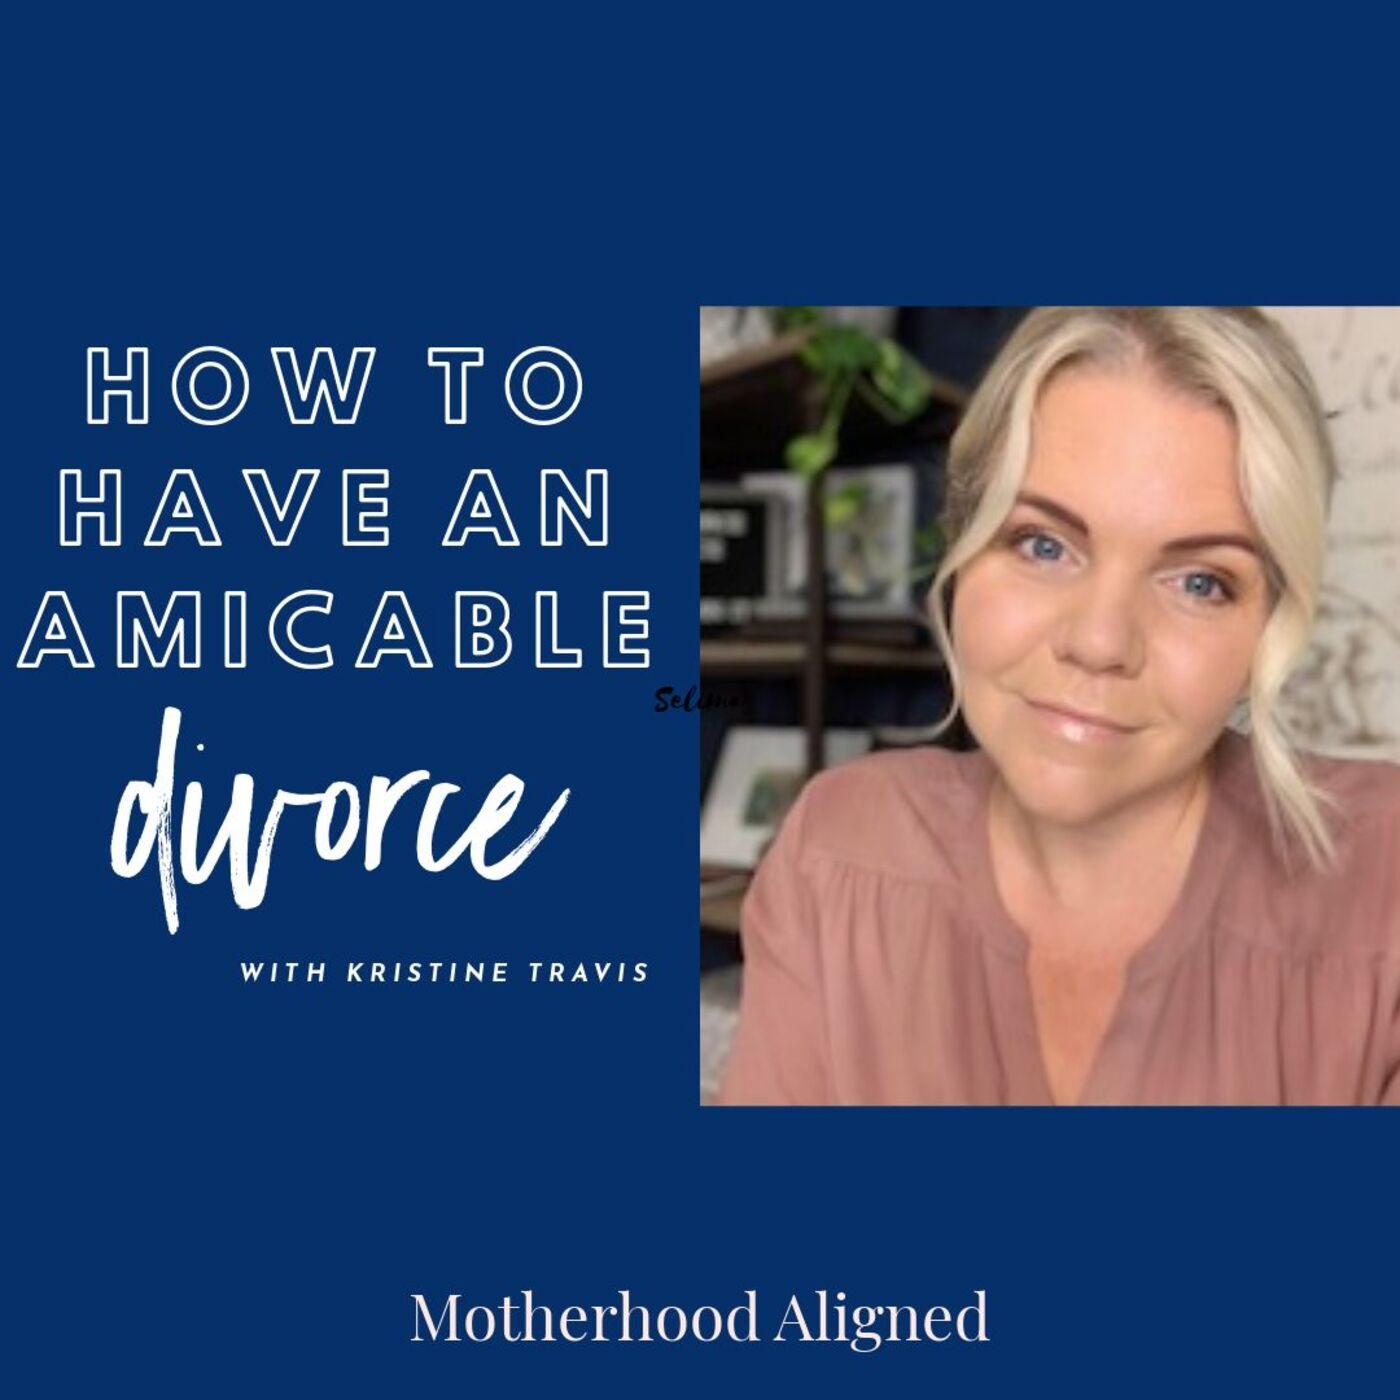 How to Have an Amicable Divorce with Kristine Travis